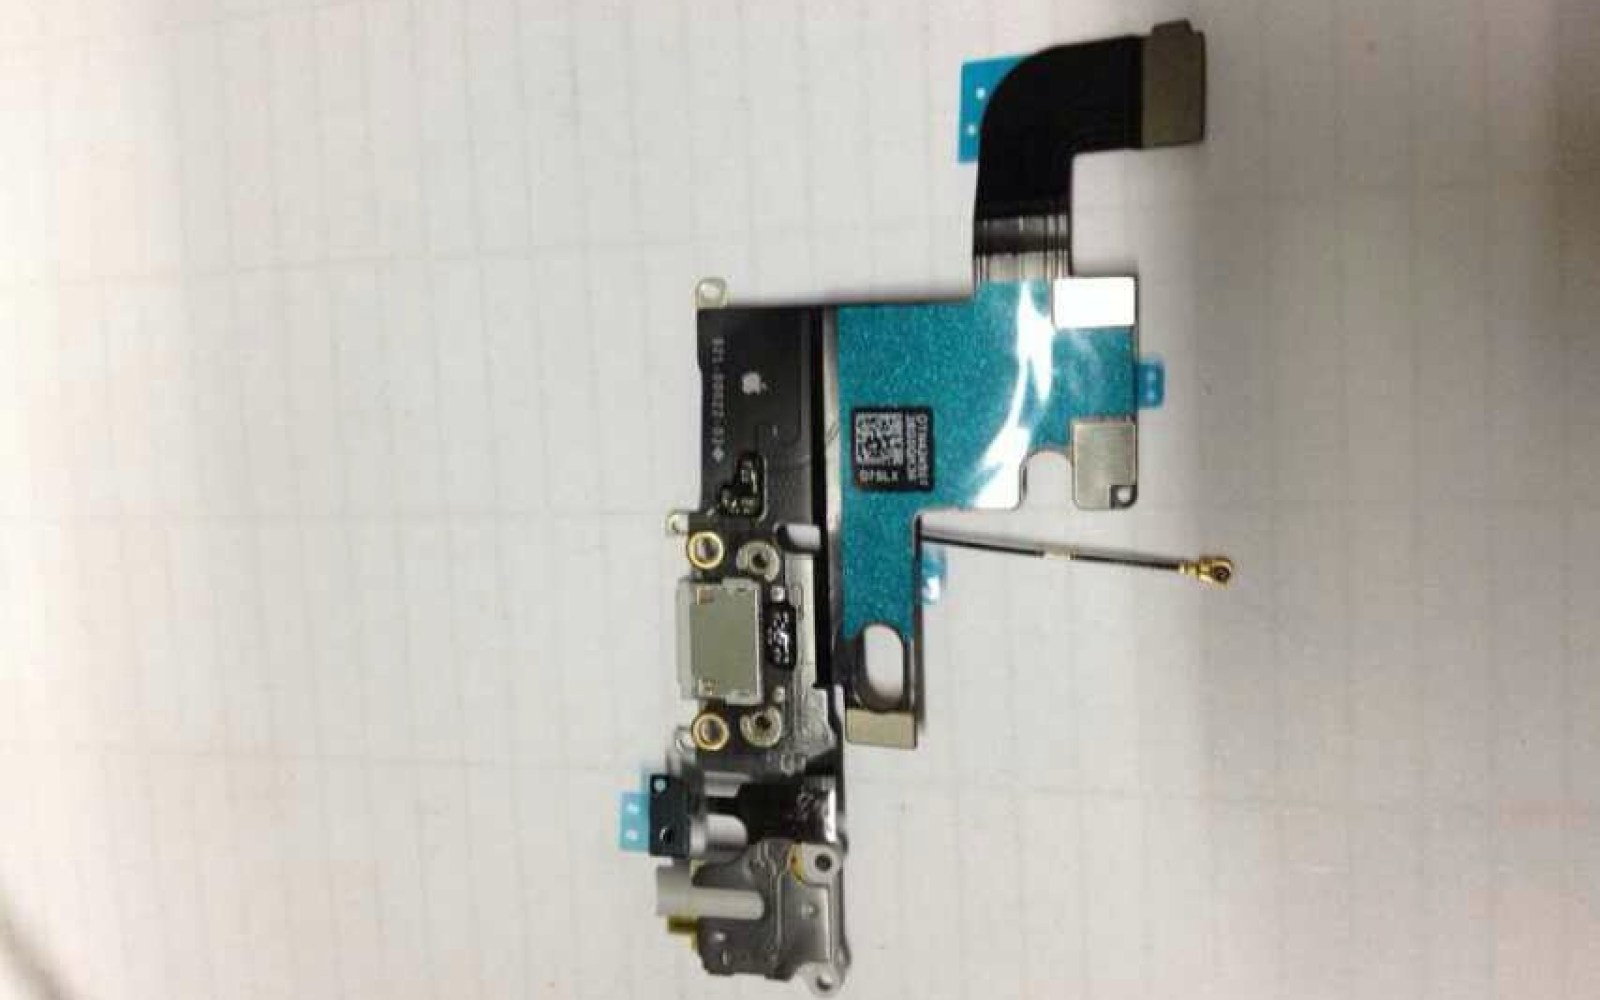 New photos of purported Lightning and audio connections for iPhone 6 surface